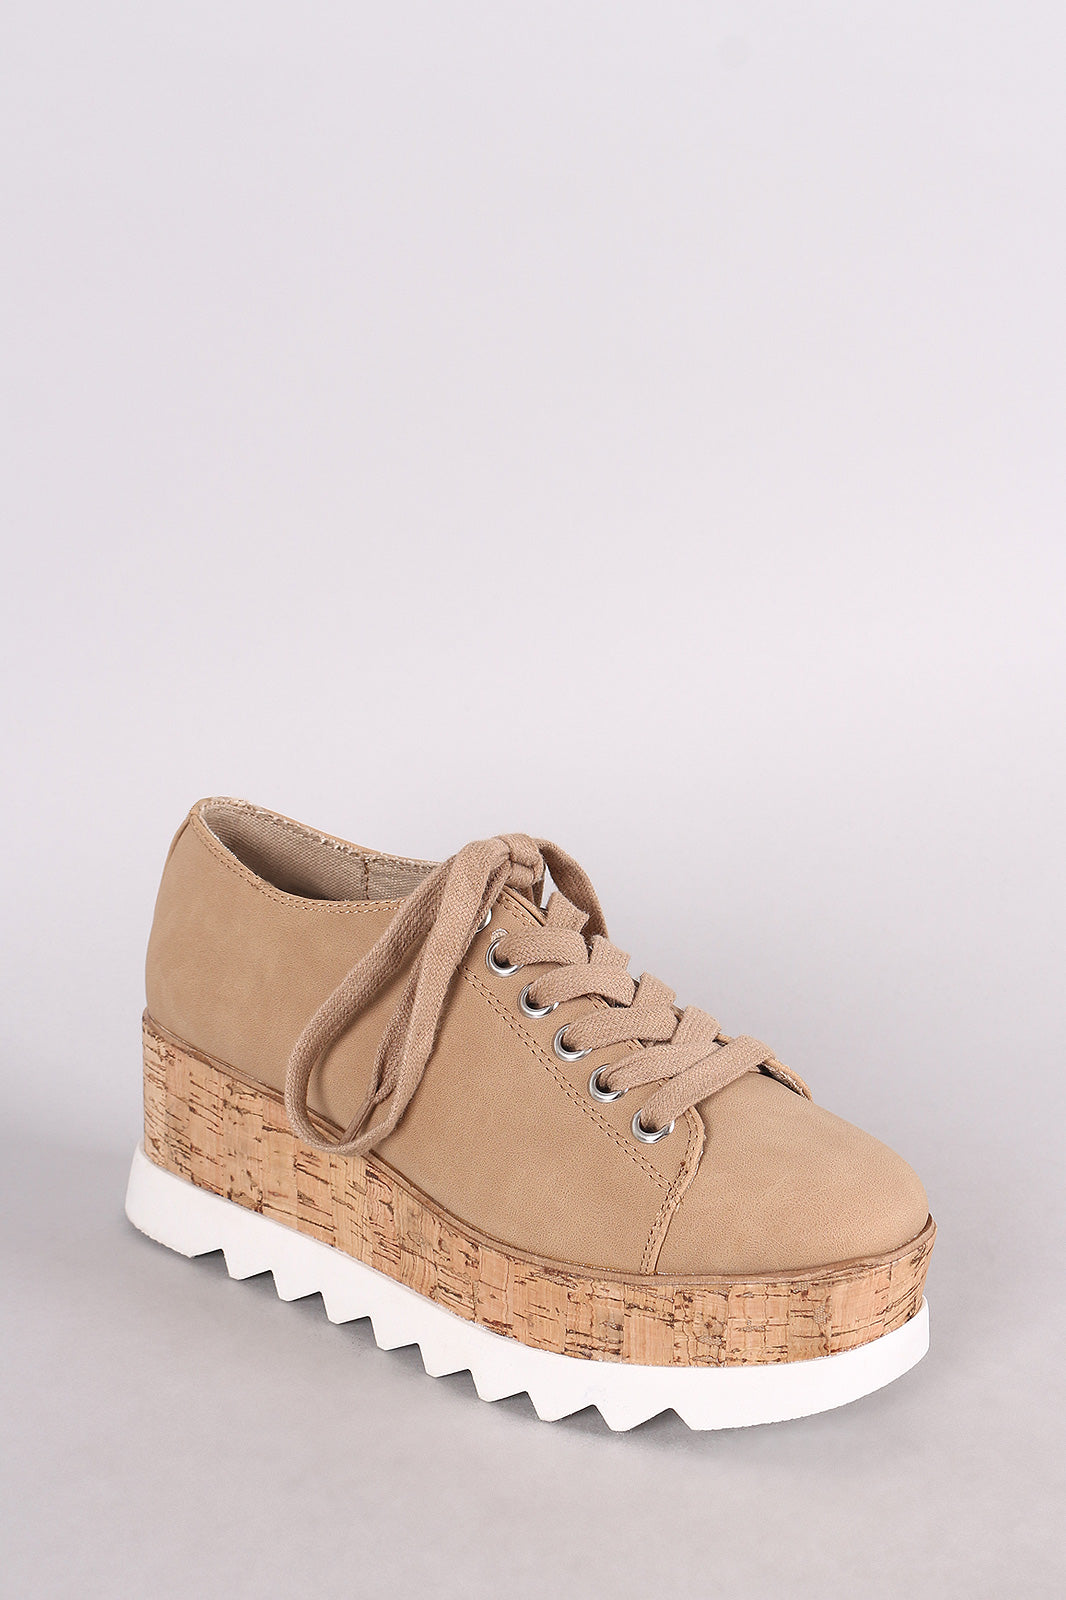 Bamboo Nubuck Lug Sole Lace Up Oxford Platform Wedge